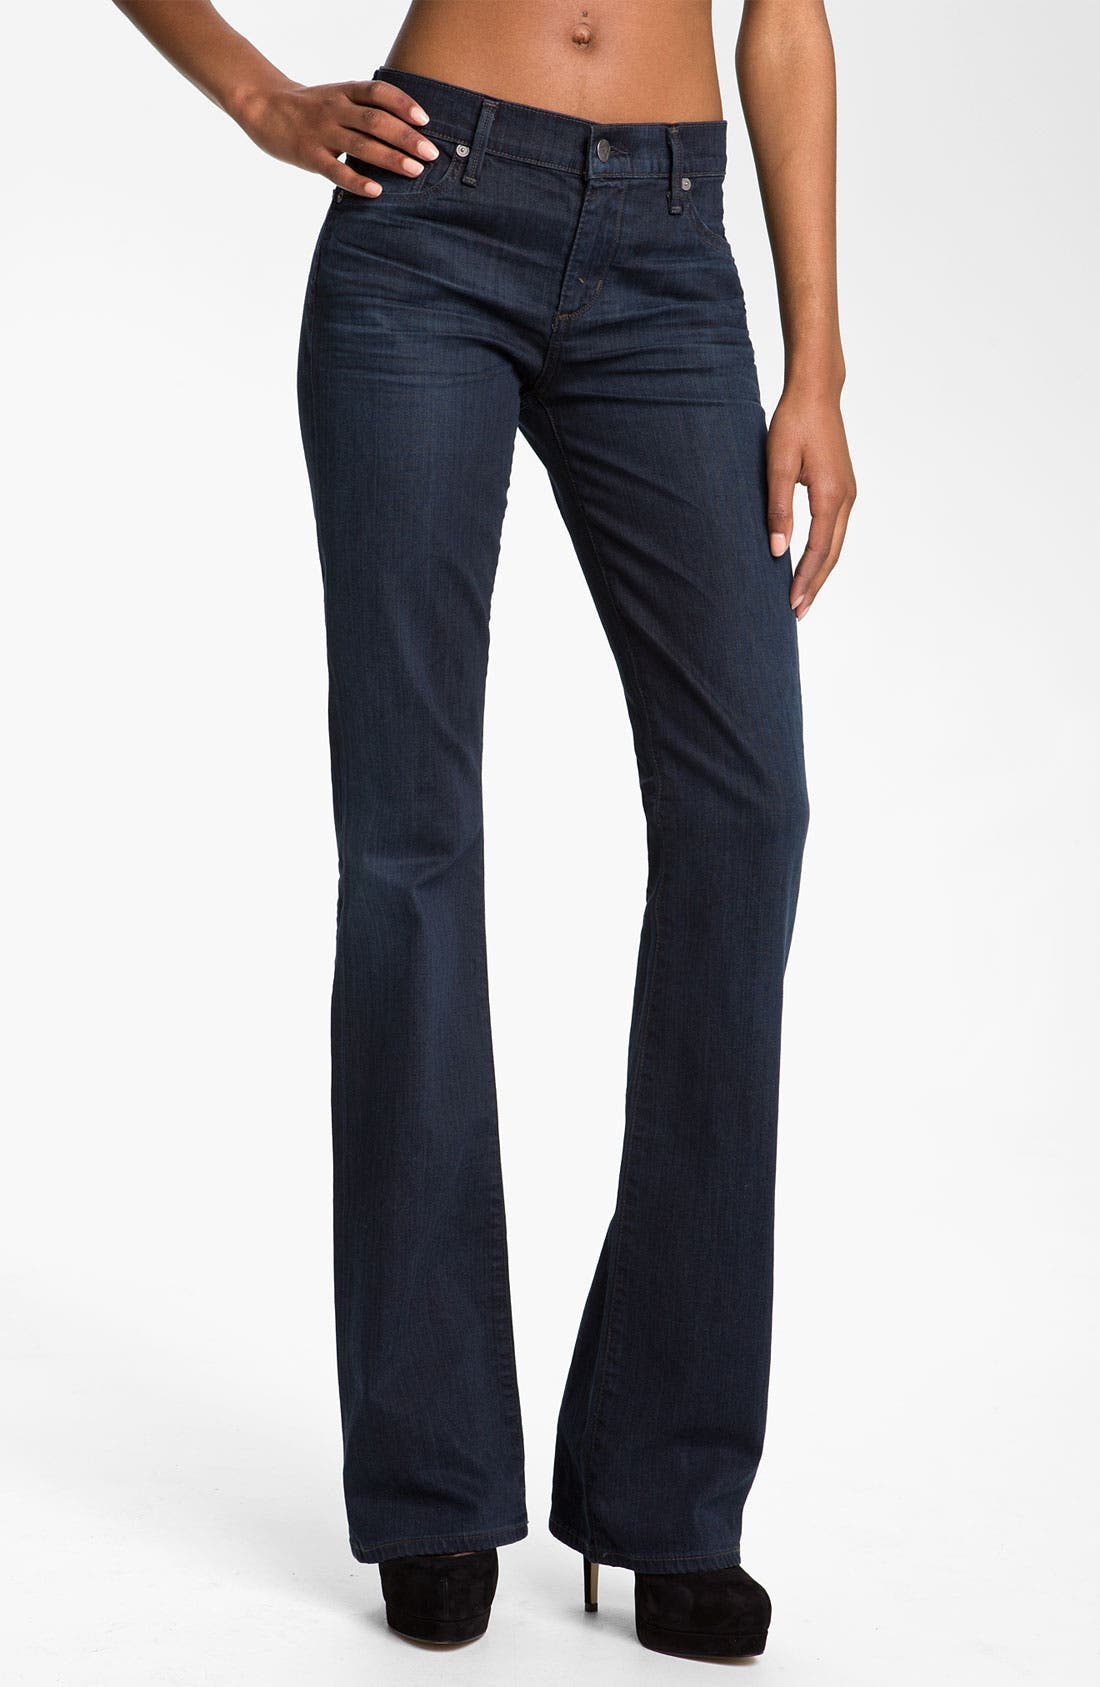 Alternate Image 1 Selected - Citizens of Humanity 'Amber' Mid Rise Bootcut Stretch Jeans (Dark Blue)